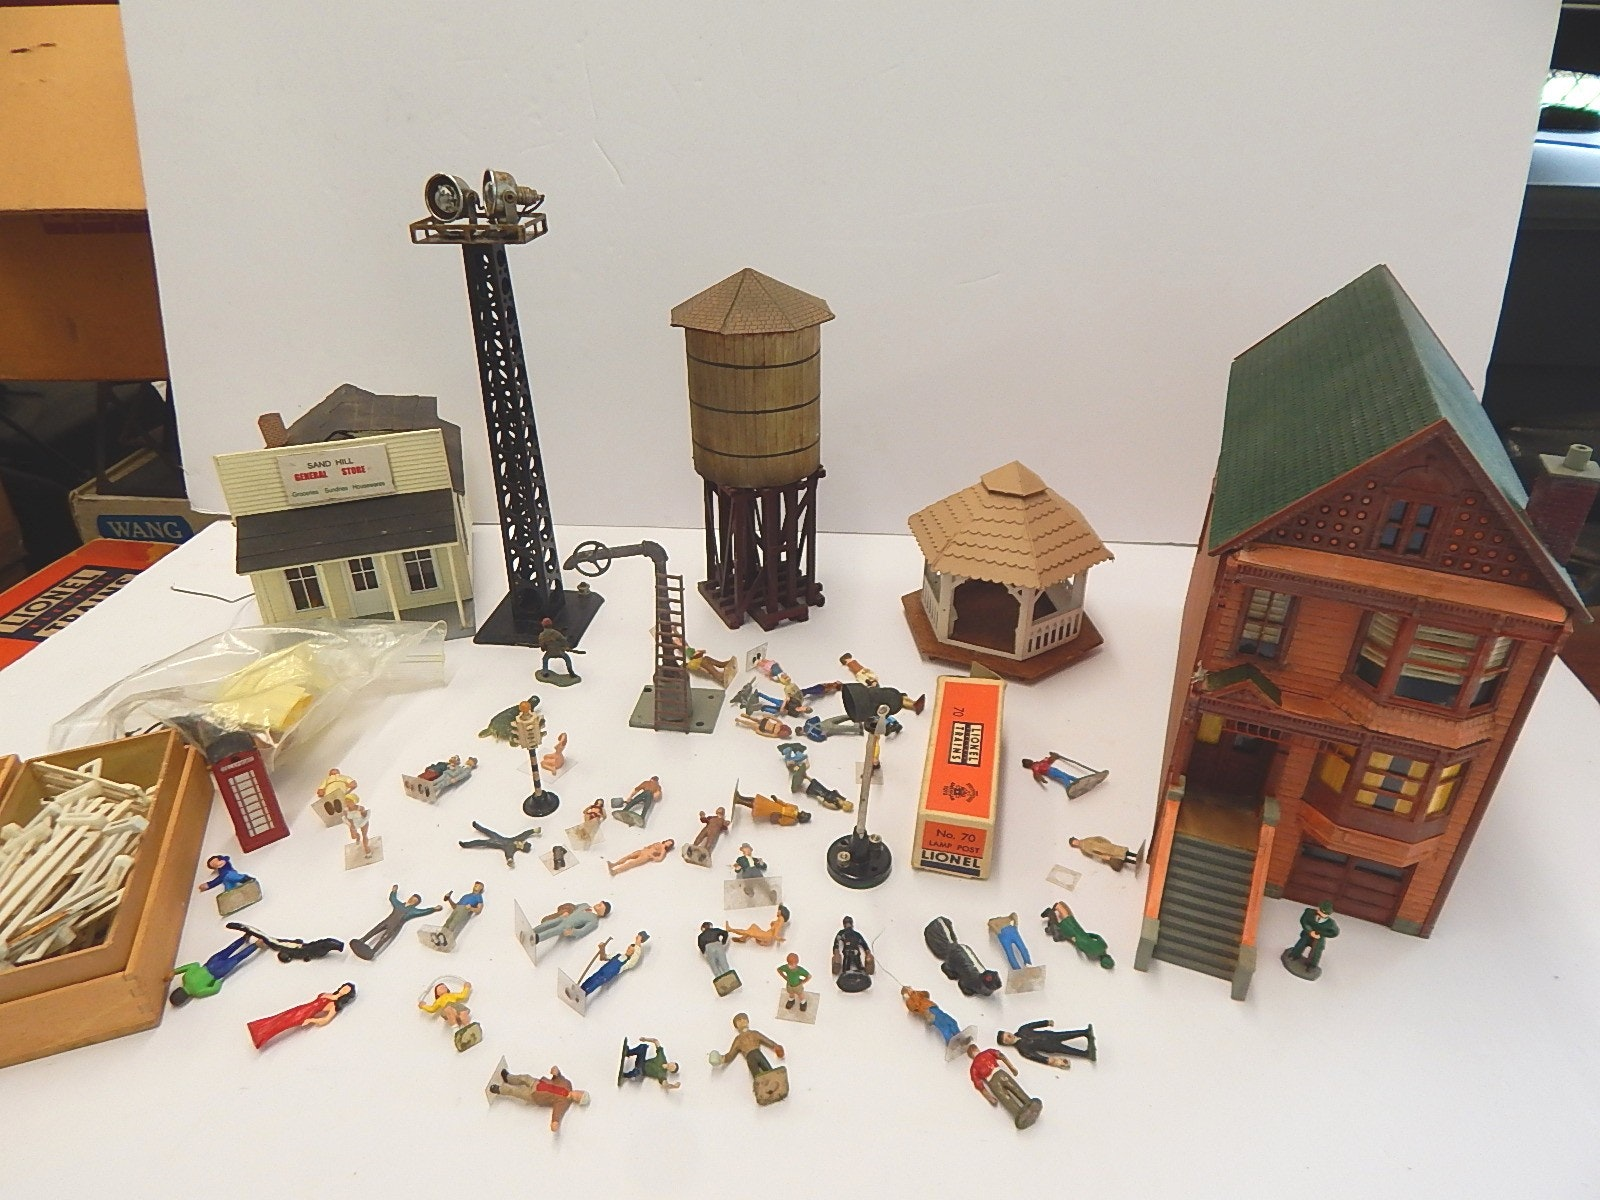 Vintage O-Gauge Train Figures, Buildings, Lamps, Lights, and Accessories